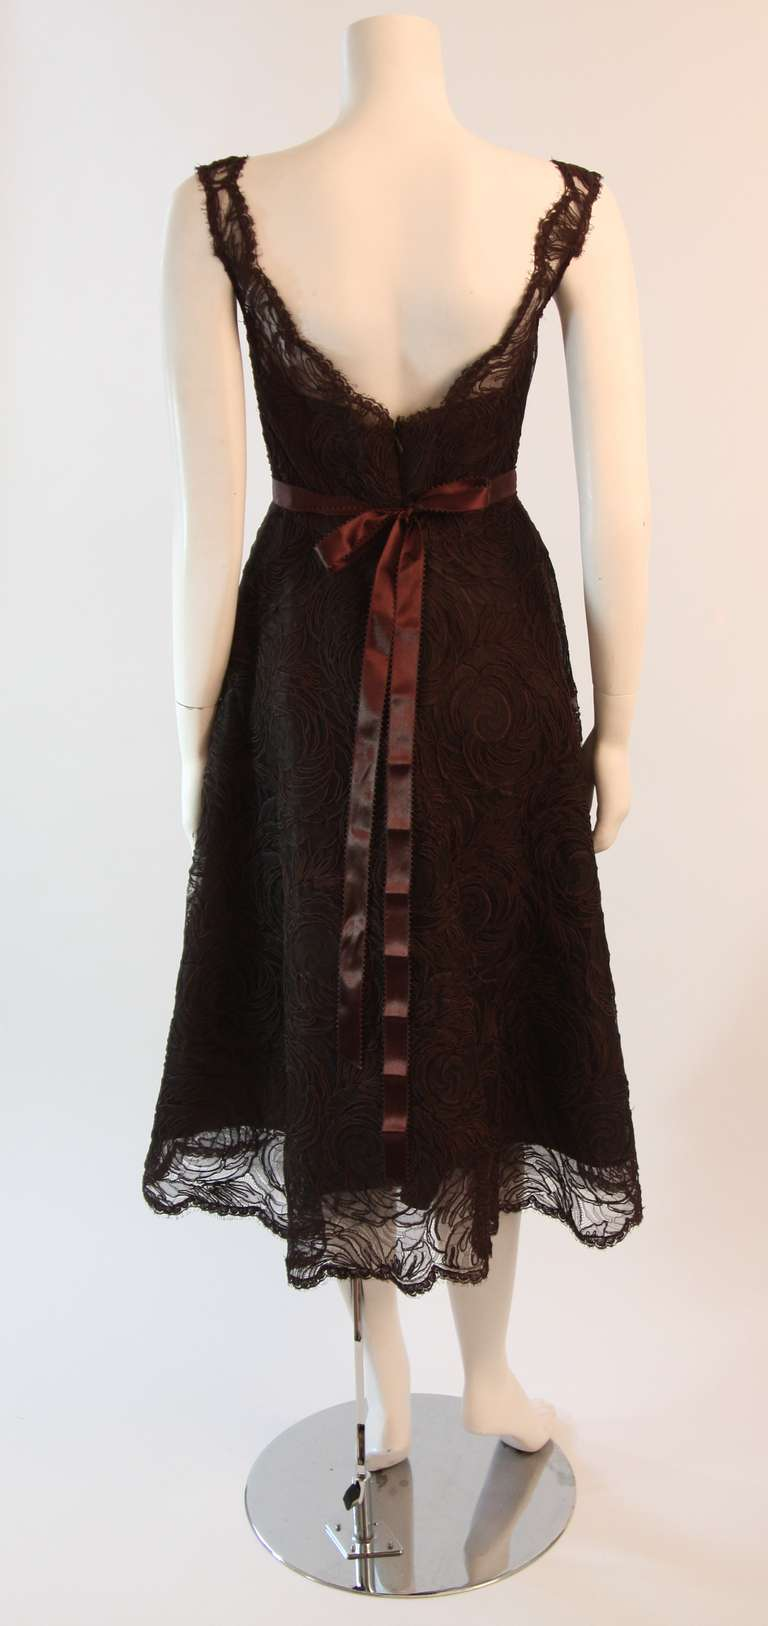 Monique Lhuillier Brown Lace Cocktail Dress Size 8 For Sale 3